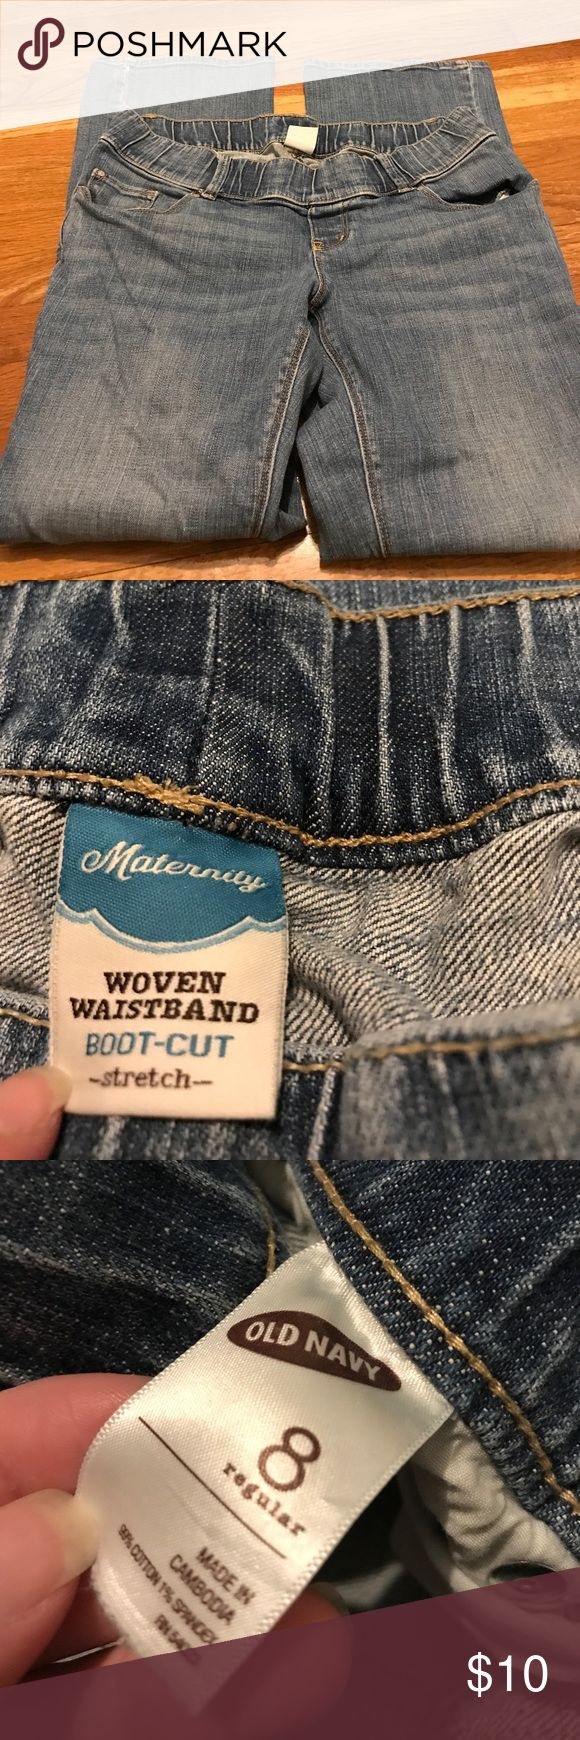 Old navy maternity jeans Old navy light wash maternity jeans. Size 8, never worn! Excellent condition! Bundle to save - I offer great discounts when bundling! Old Navy Jeans Flare & Wide Leg